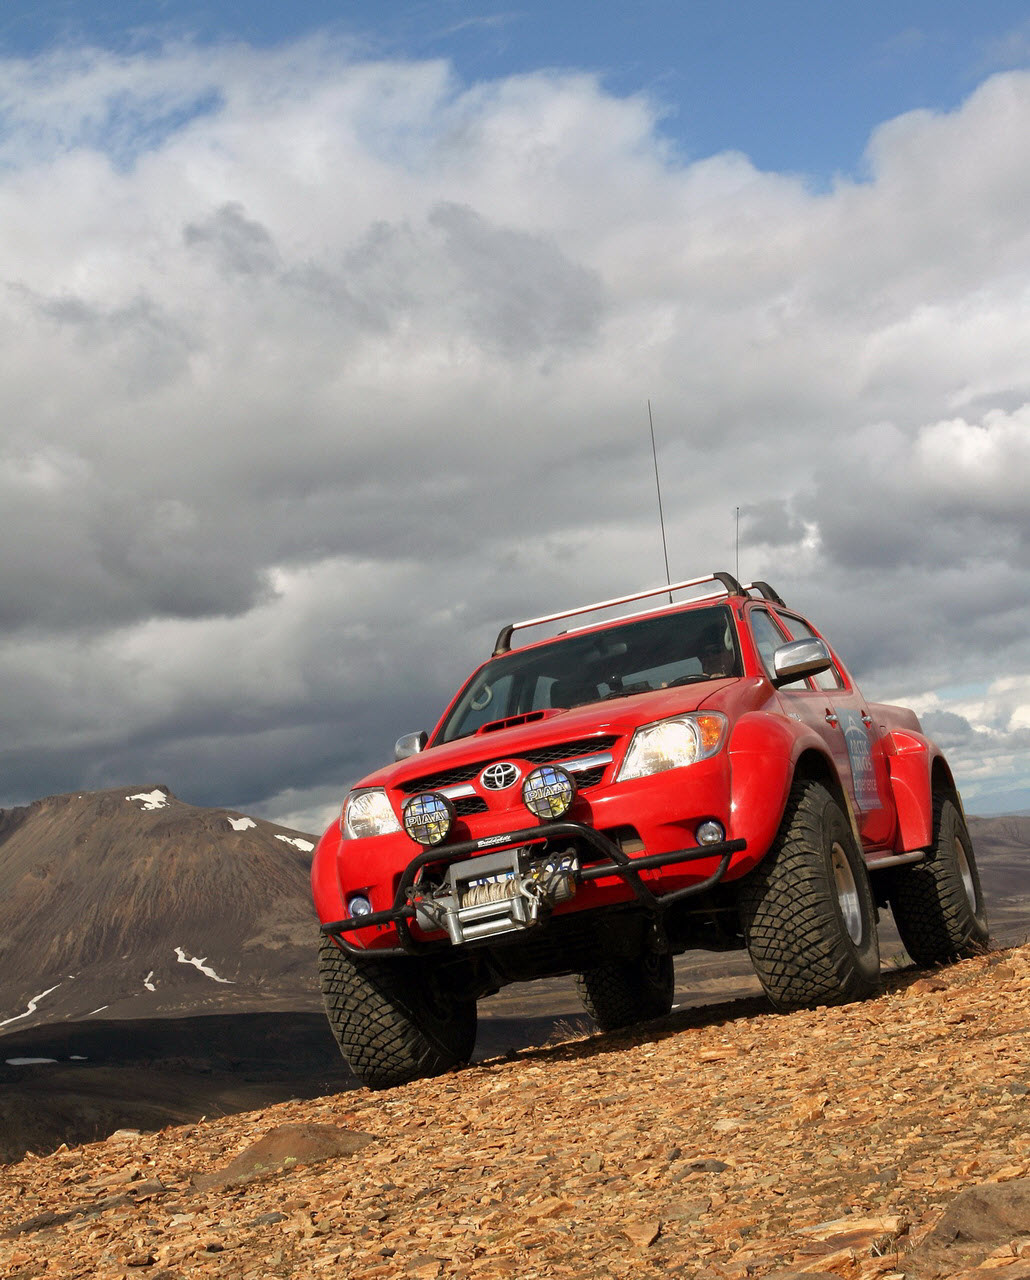 38-inch tyres Toyota Hilux